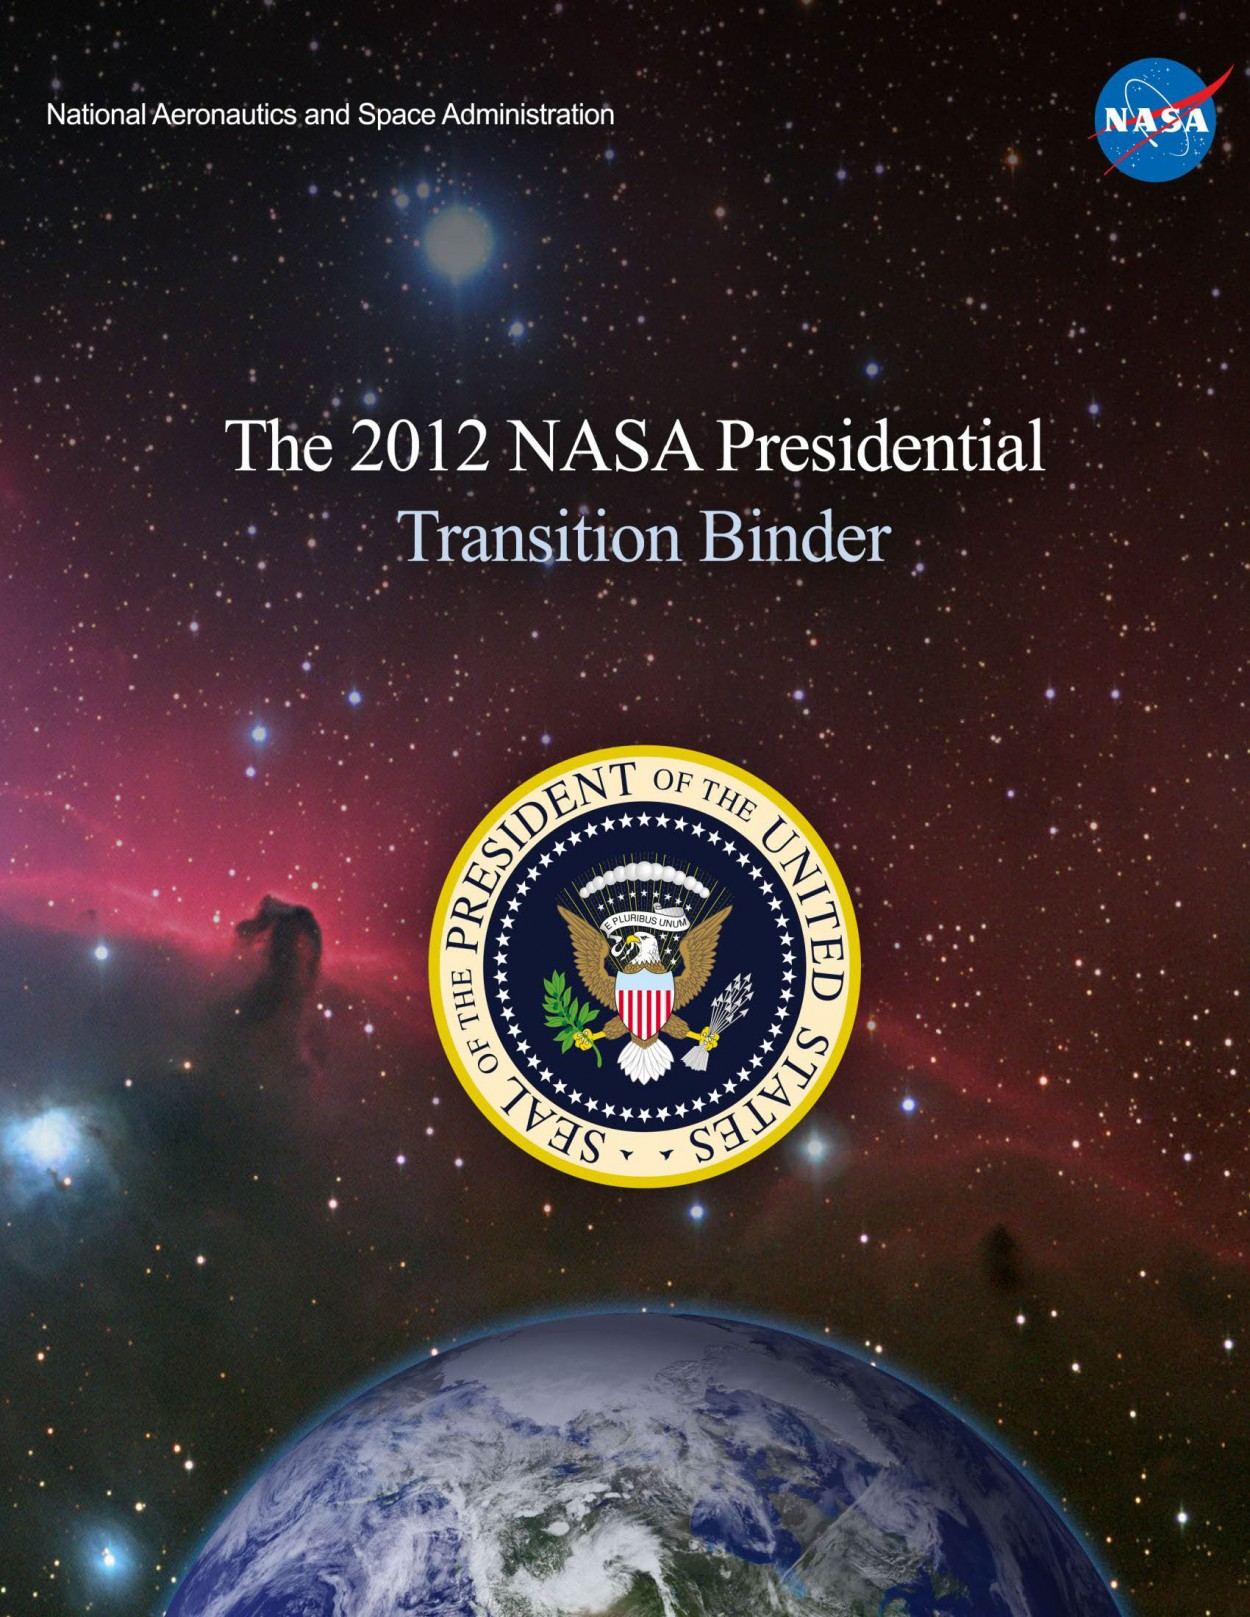 2012-NASA-Presidential-Transition-Binder.jpg